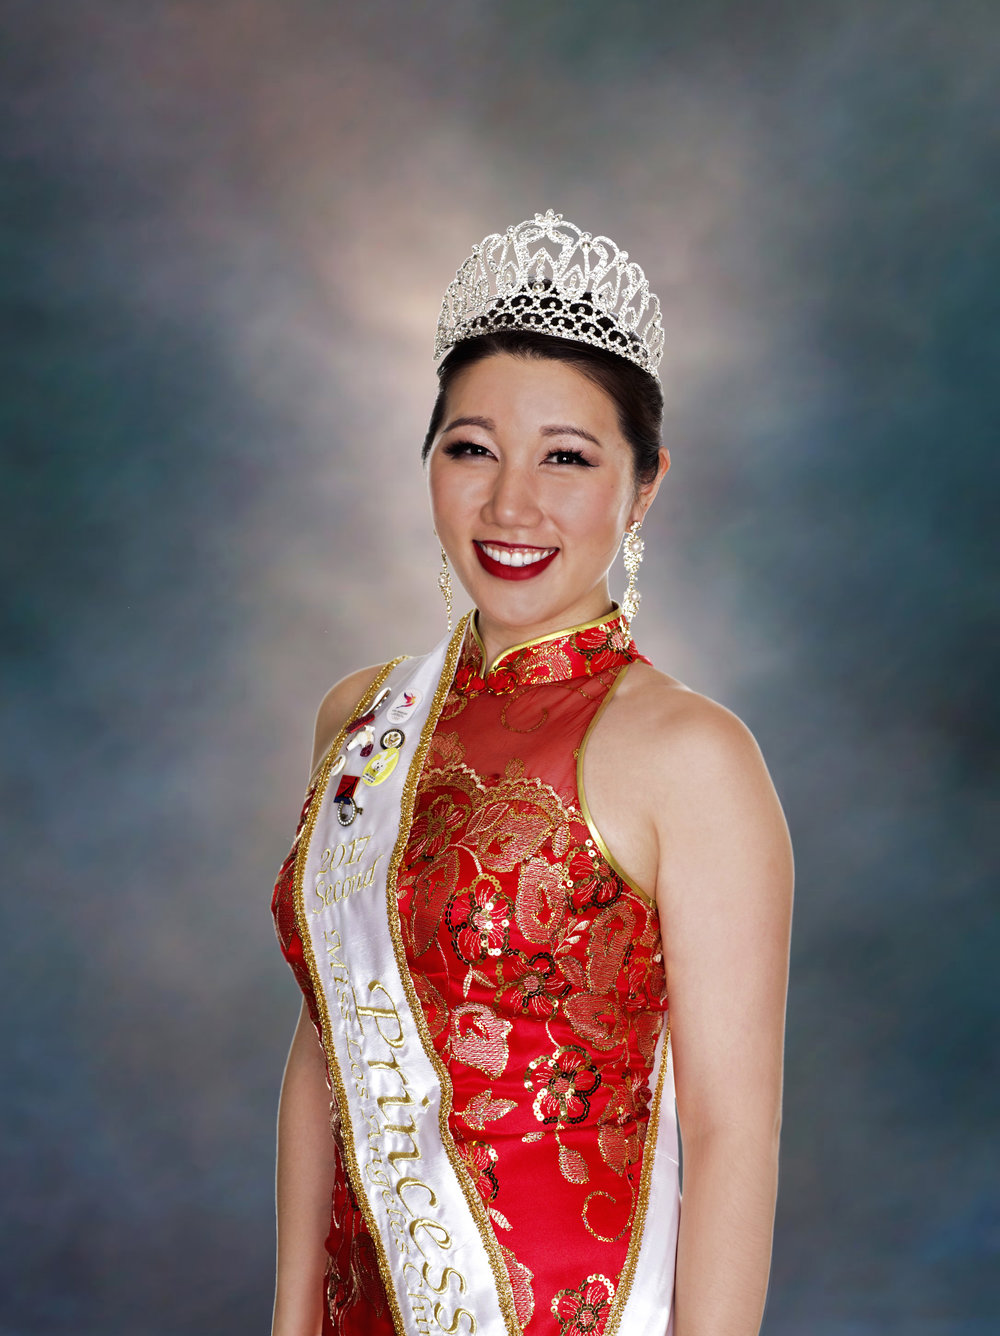 Second Princess: Sabrina Kaing